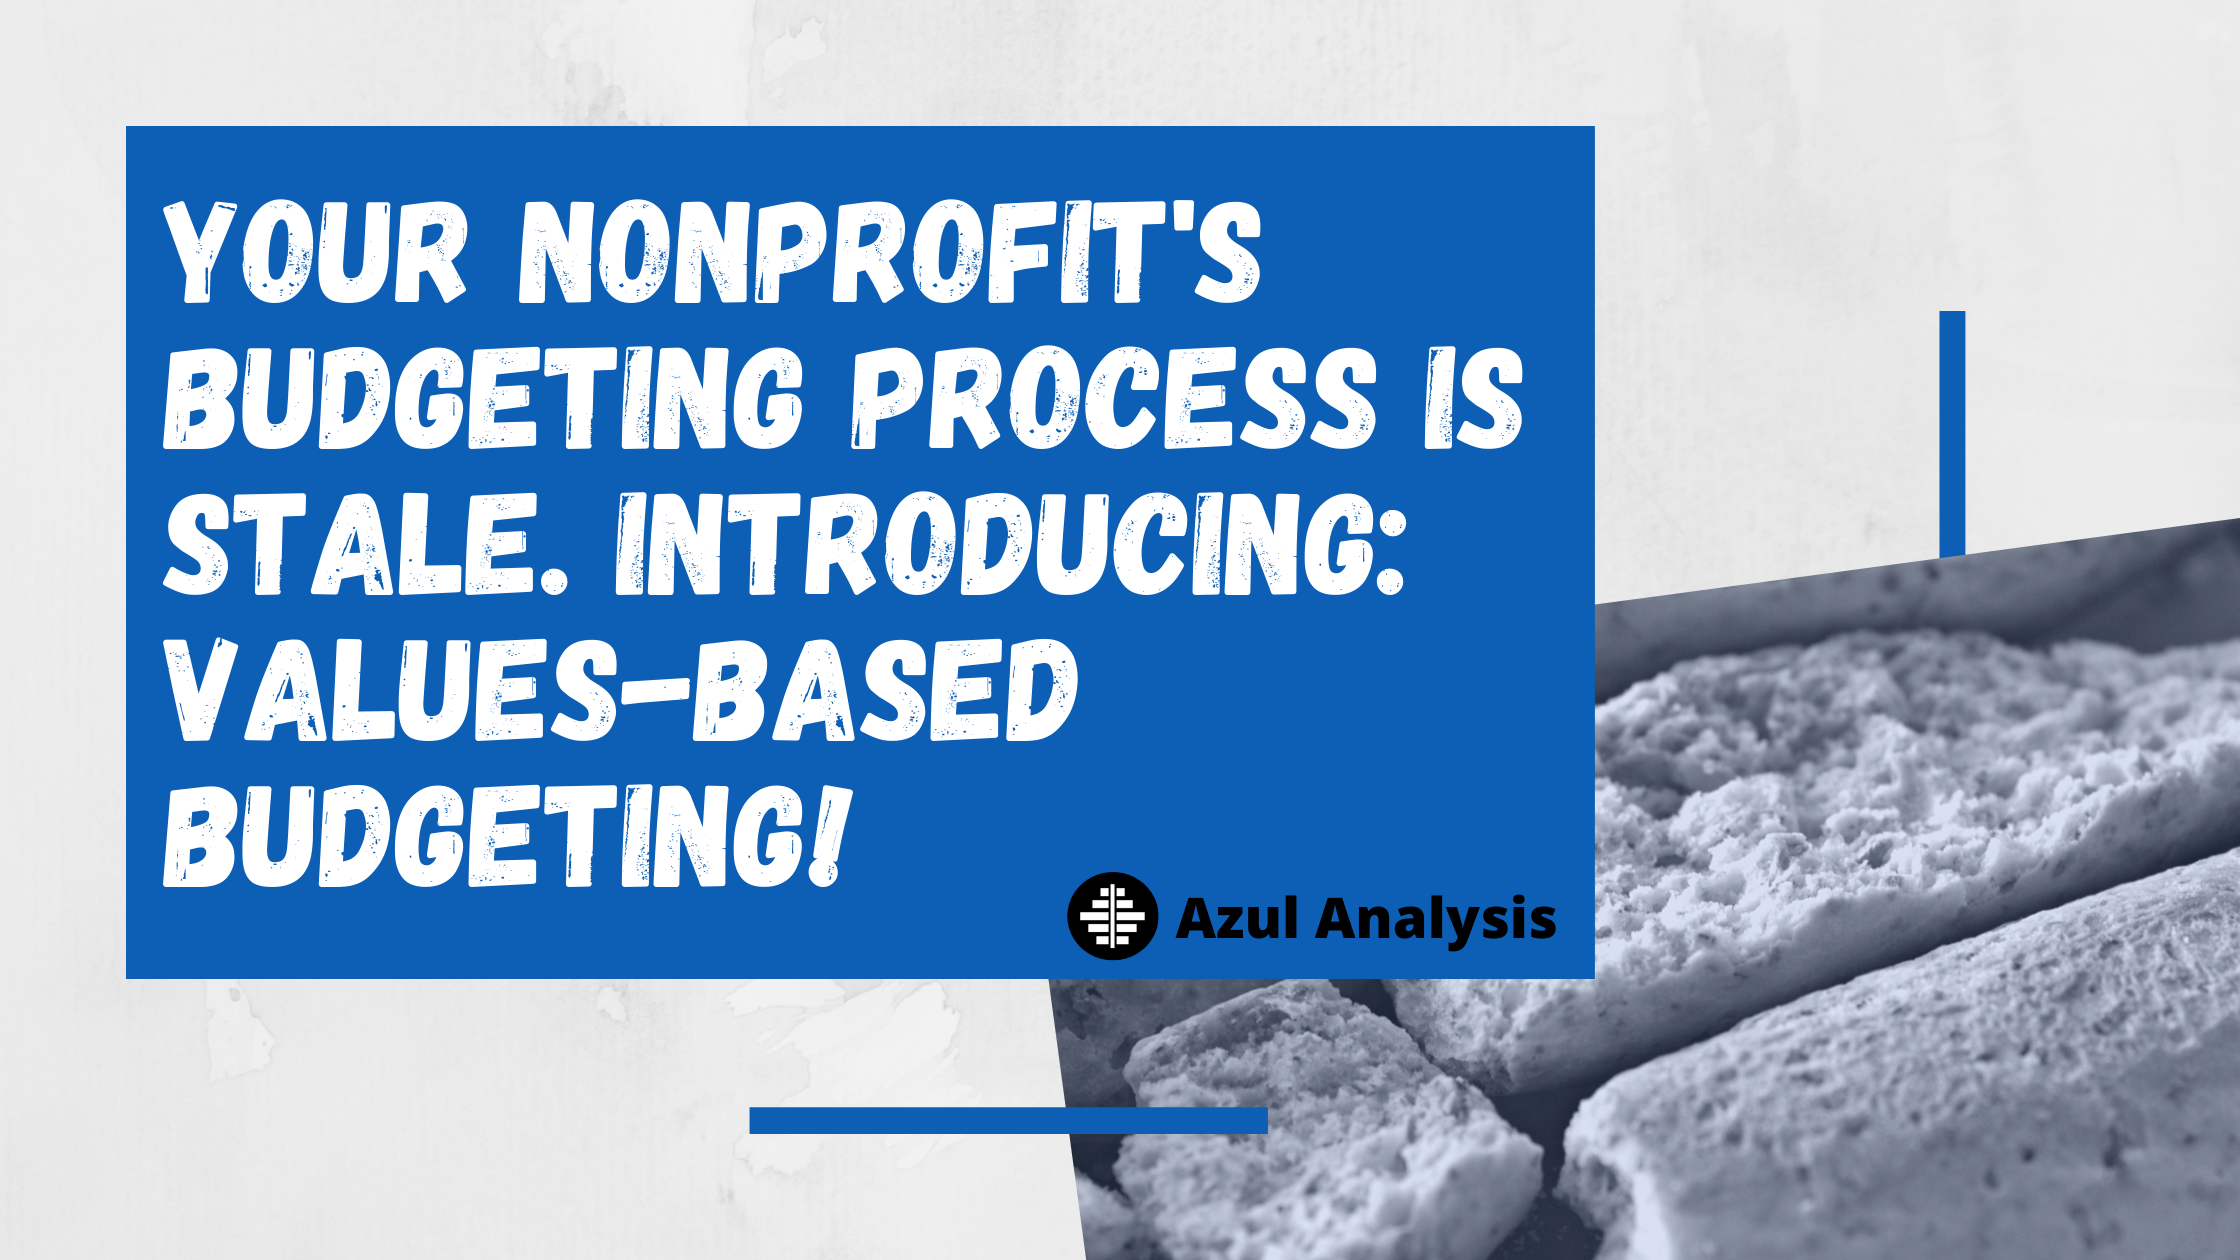 Blog Header: Your Nonprofits's Budgeting Process is Stale. Introducing: Values-Based Budgeting!